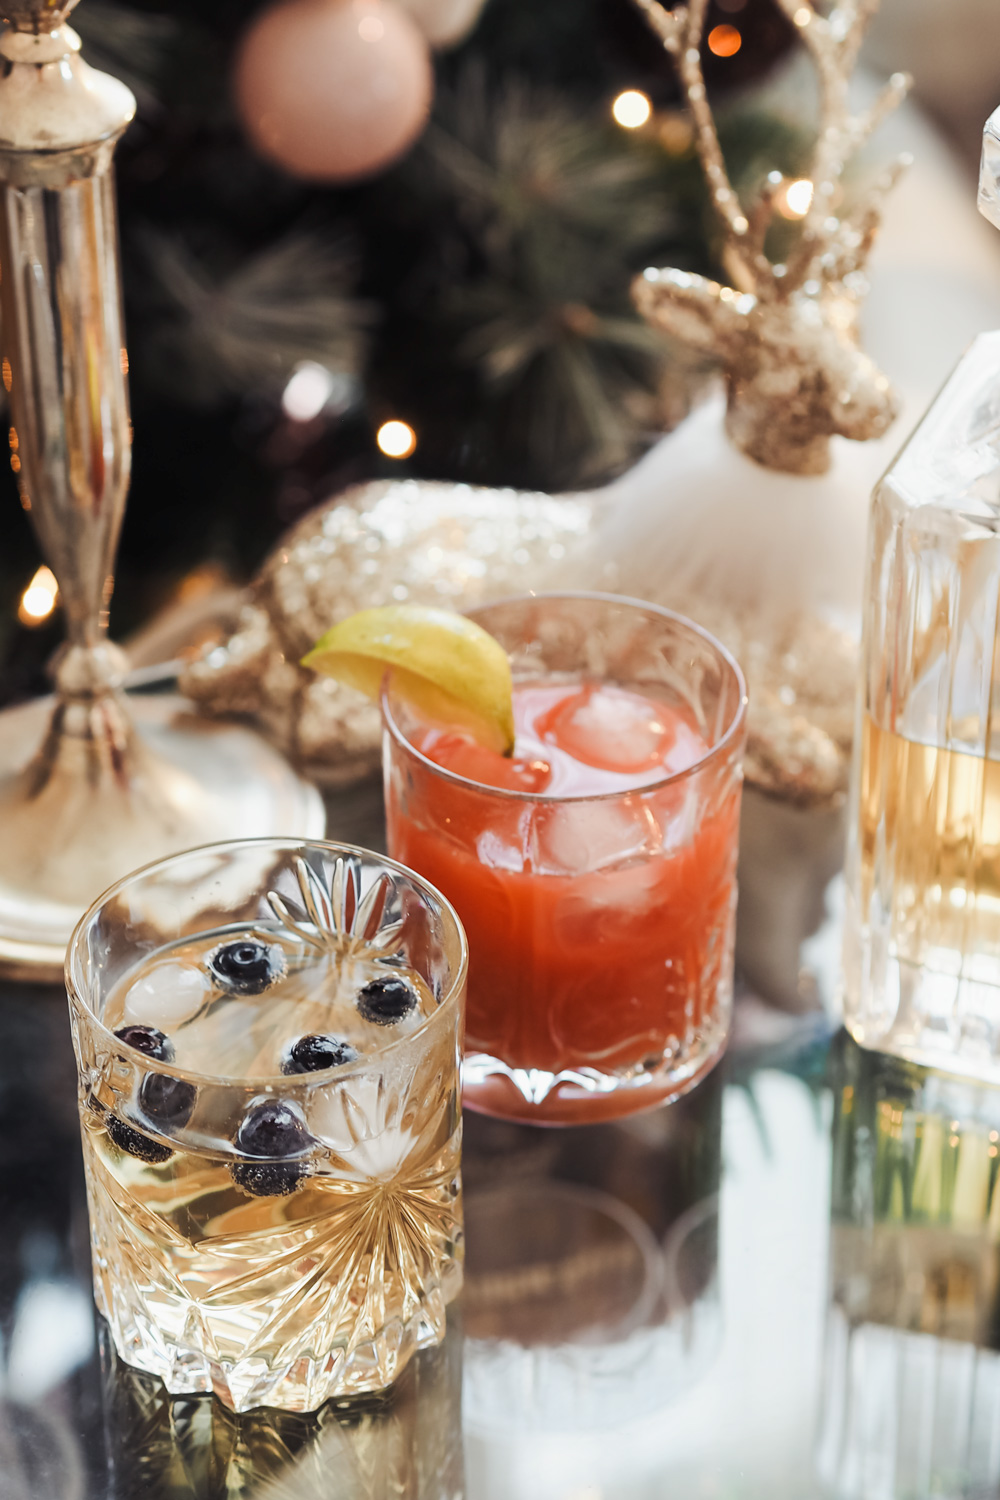 Easy mocktail recipes for New Year's Eve